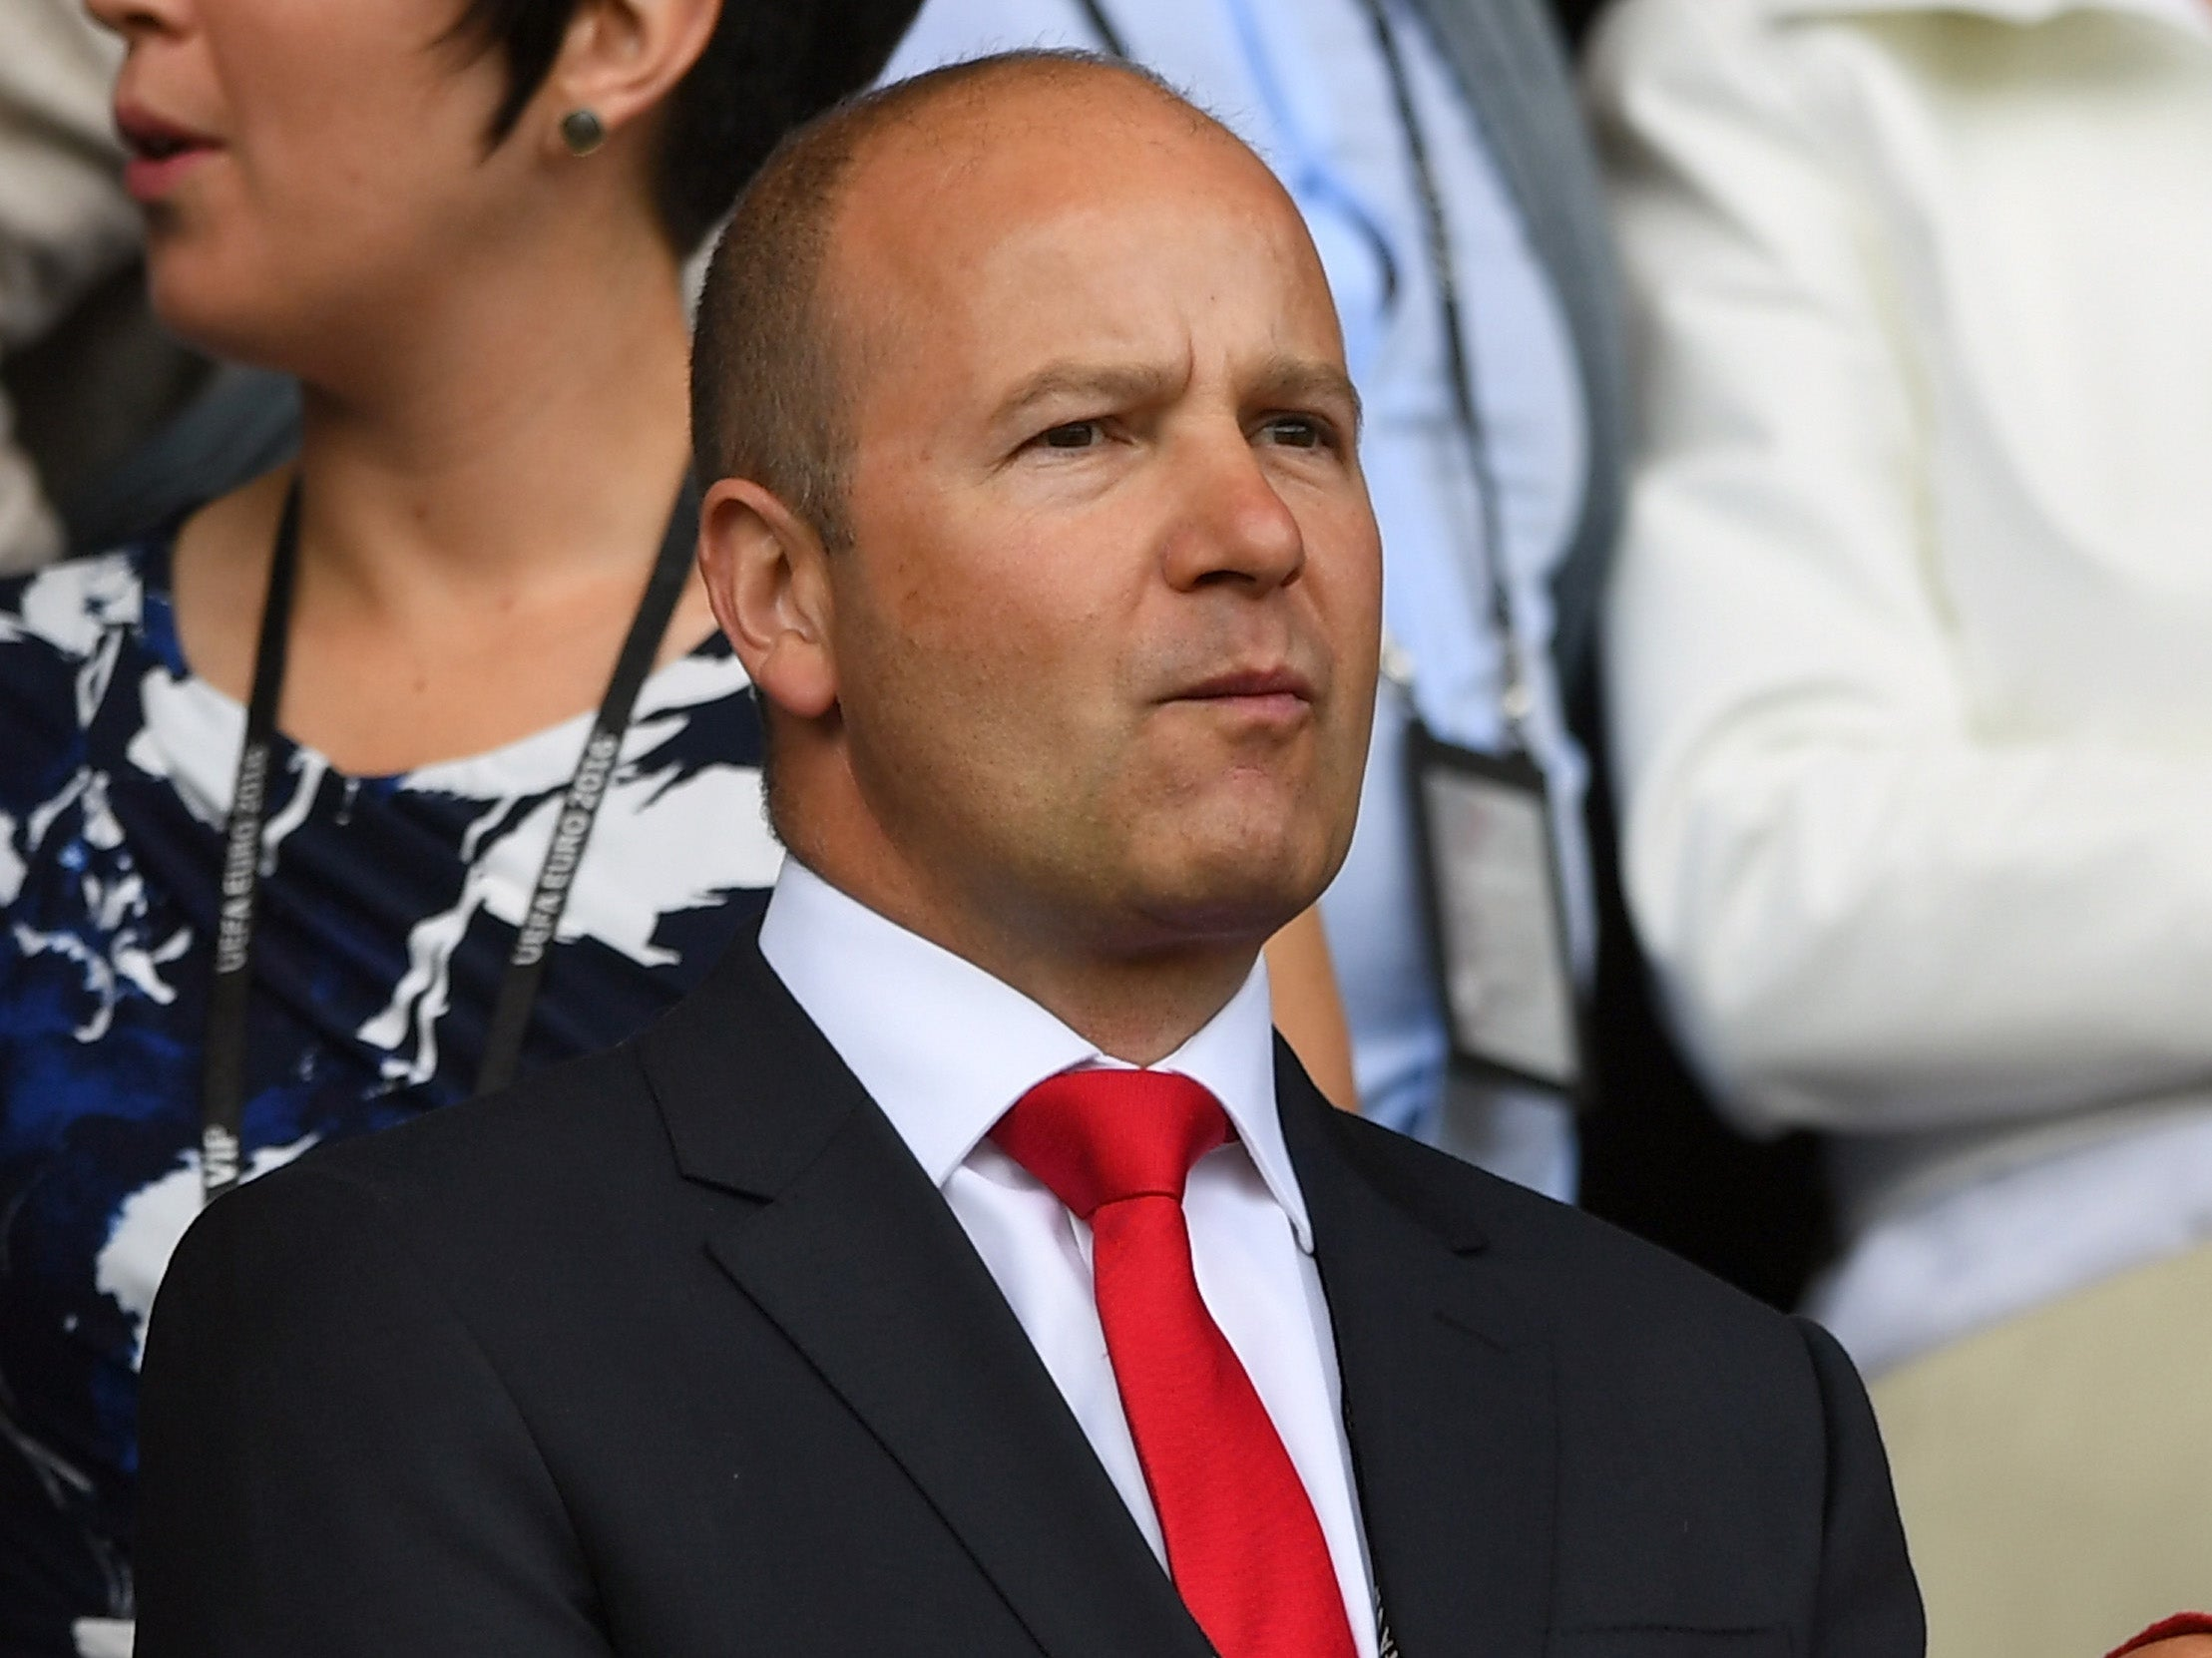 FAW chief executive Jonathan Ford to face disciplinary commission over anti-England comments